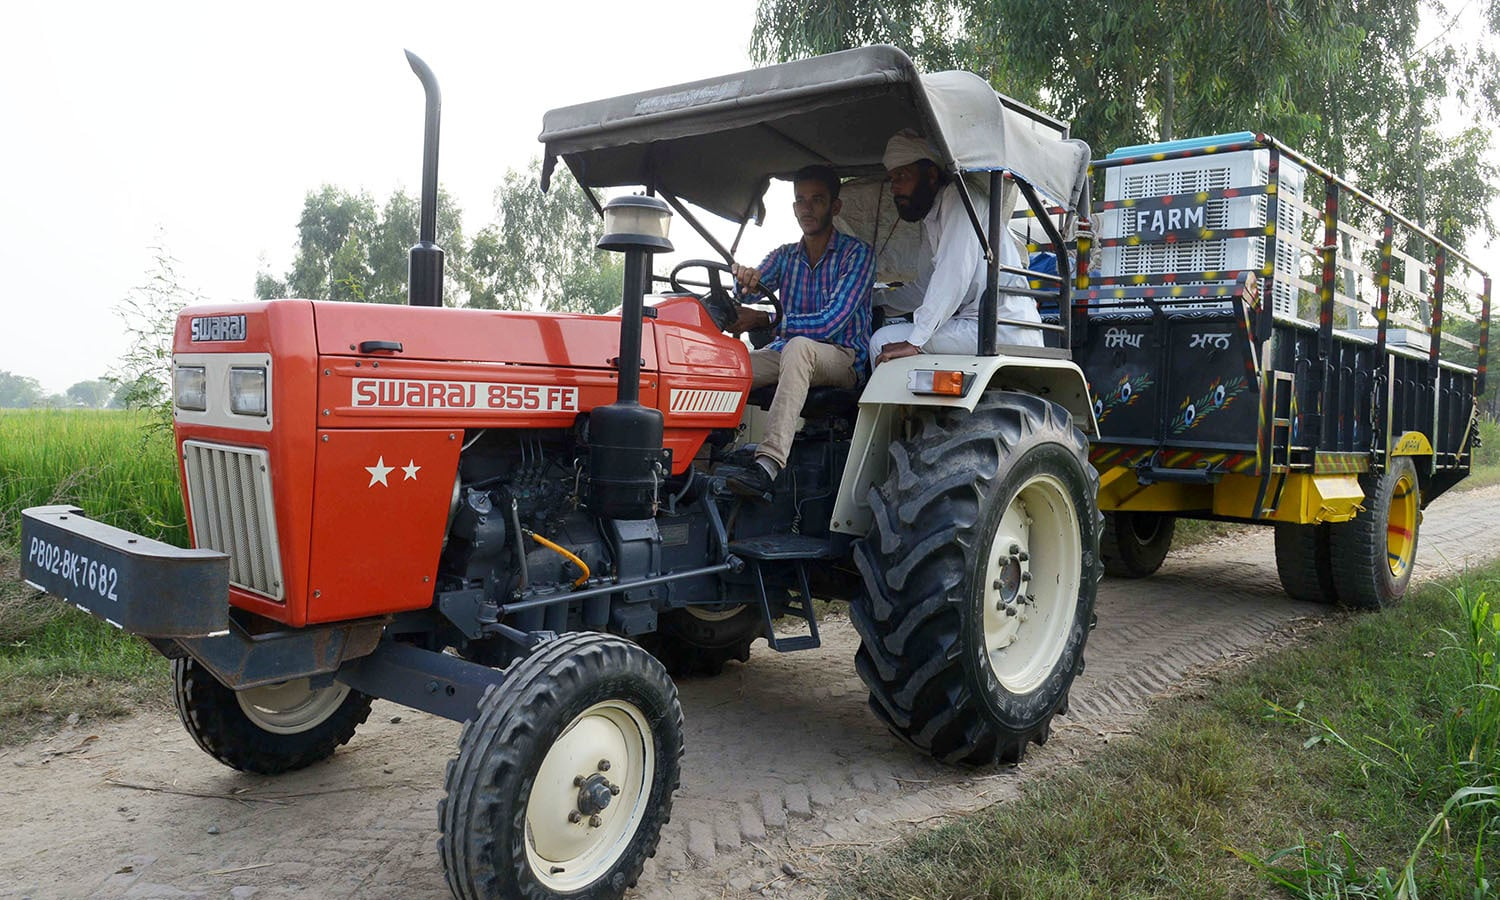 Indian villagers from the India-Pakistan border area ride on a tractor as they evacuate from a border village near Mahawa. — AFP